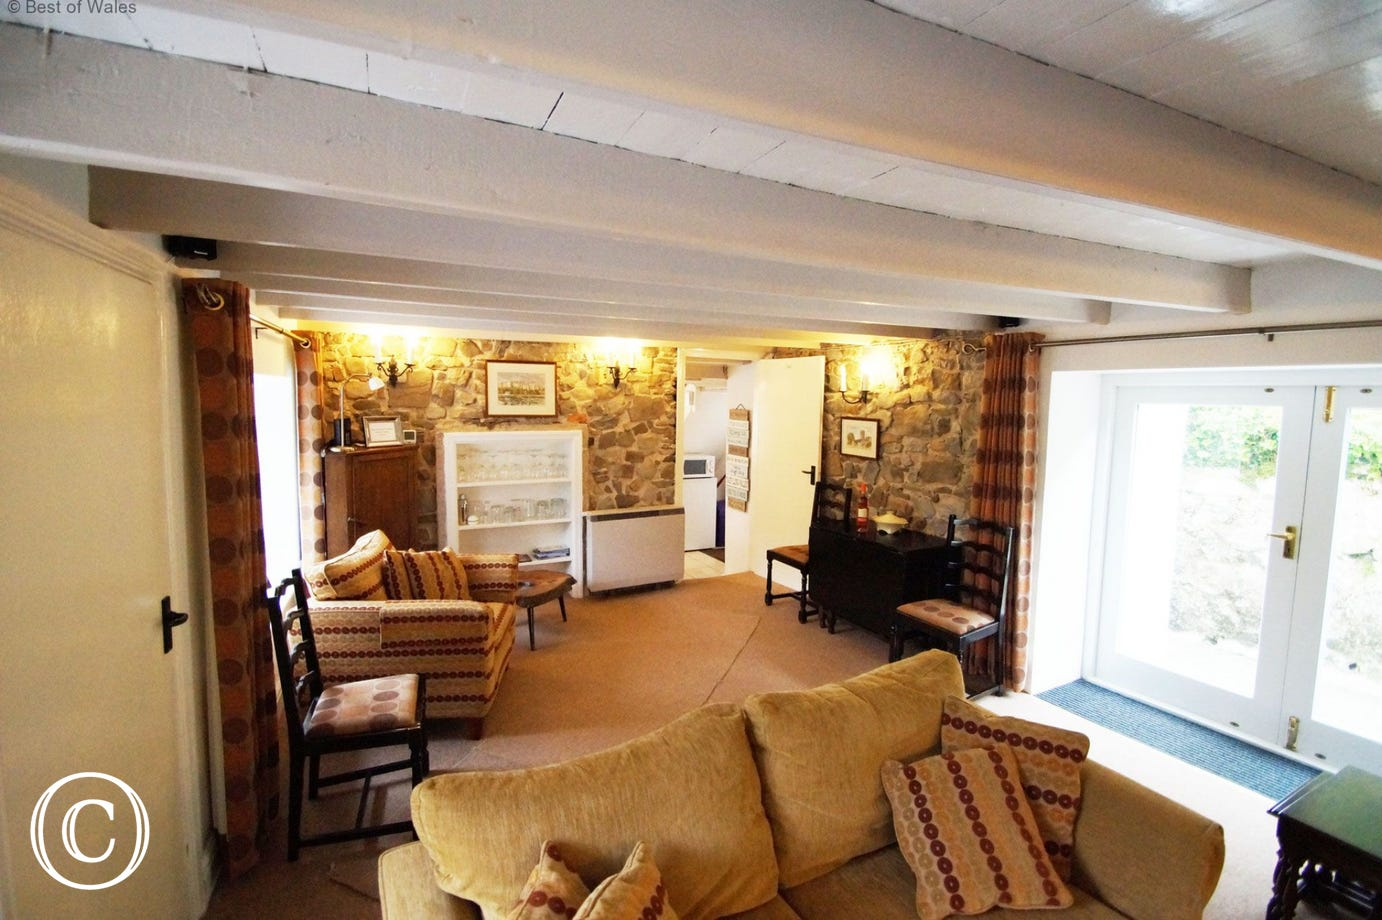 Pembrokshire beach cottage - lounge with TV & surround sound